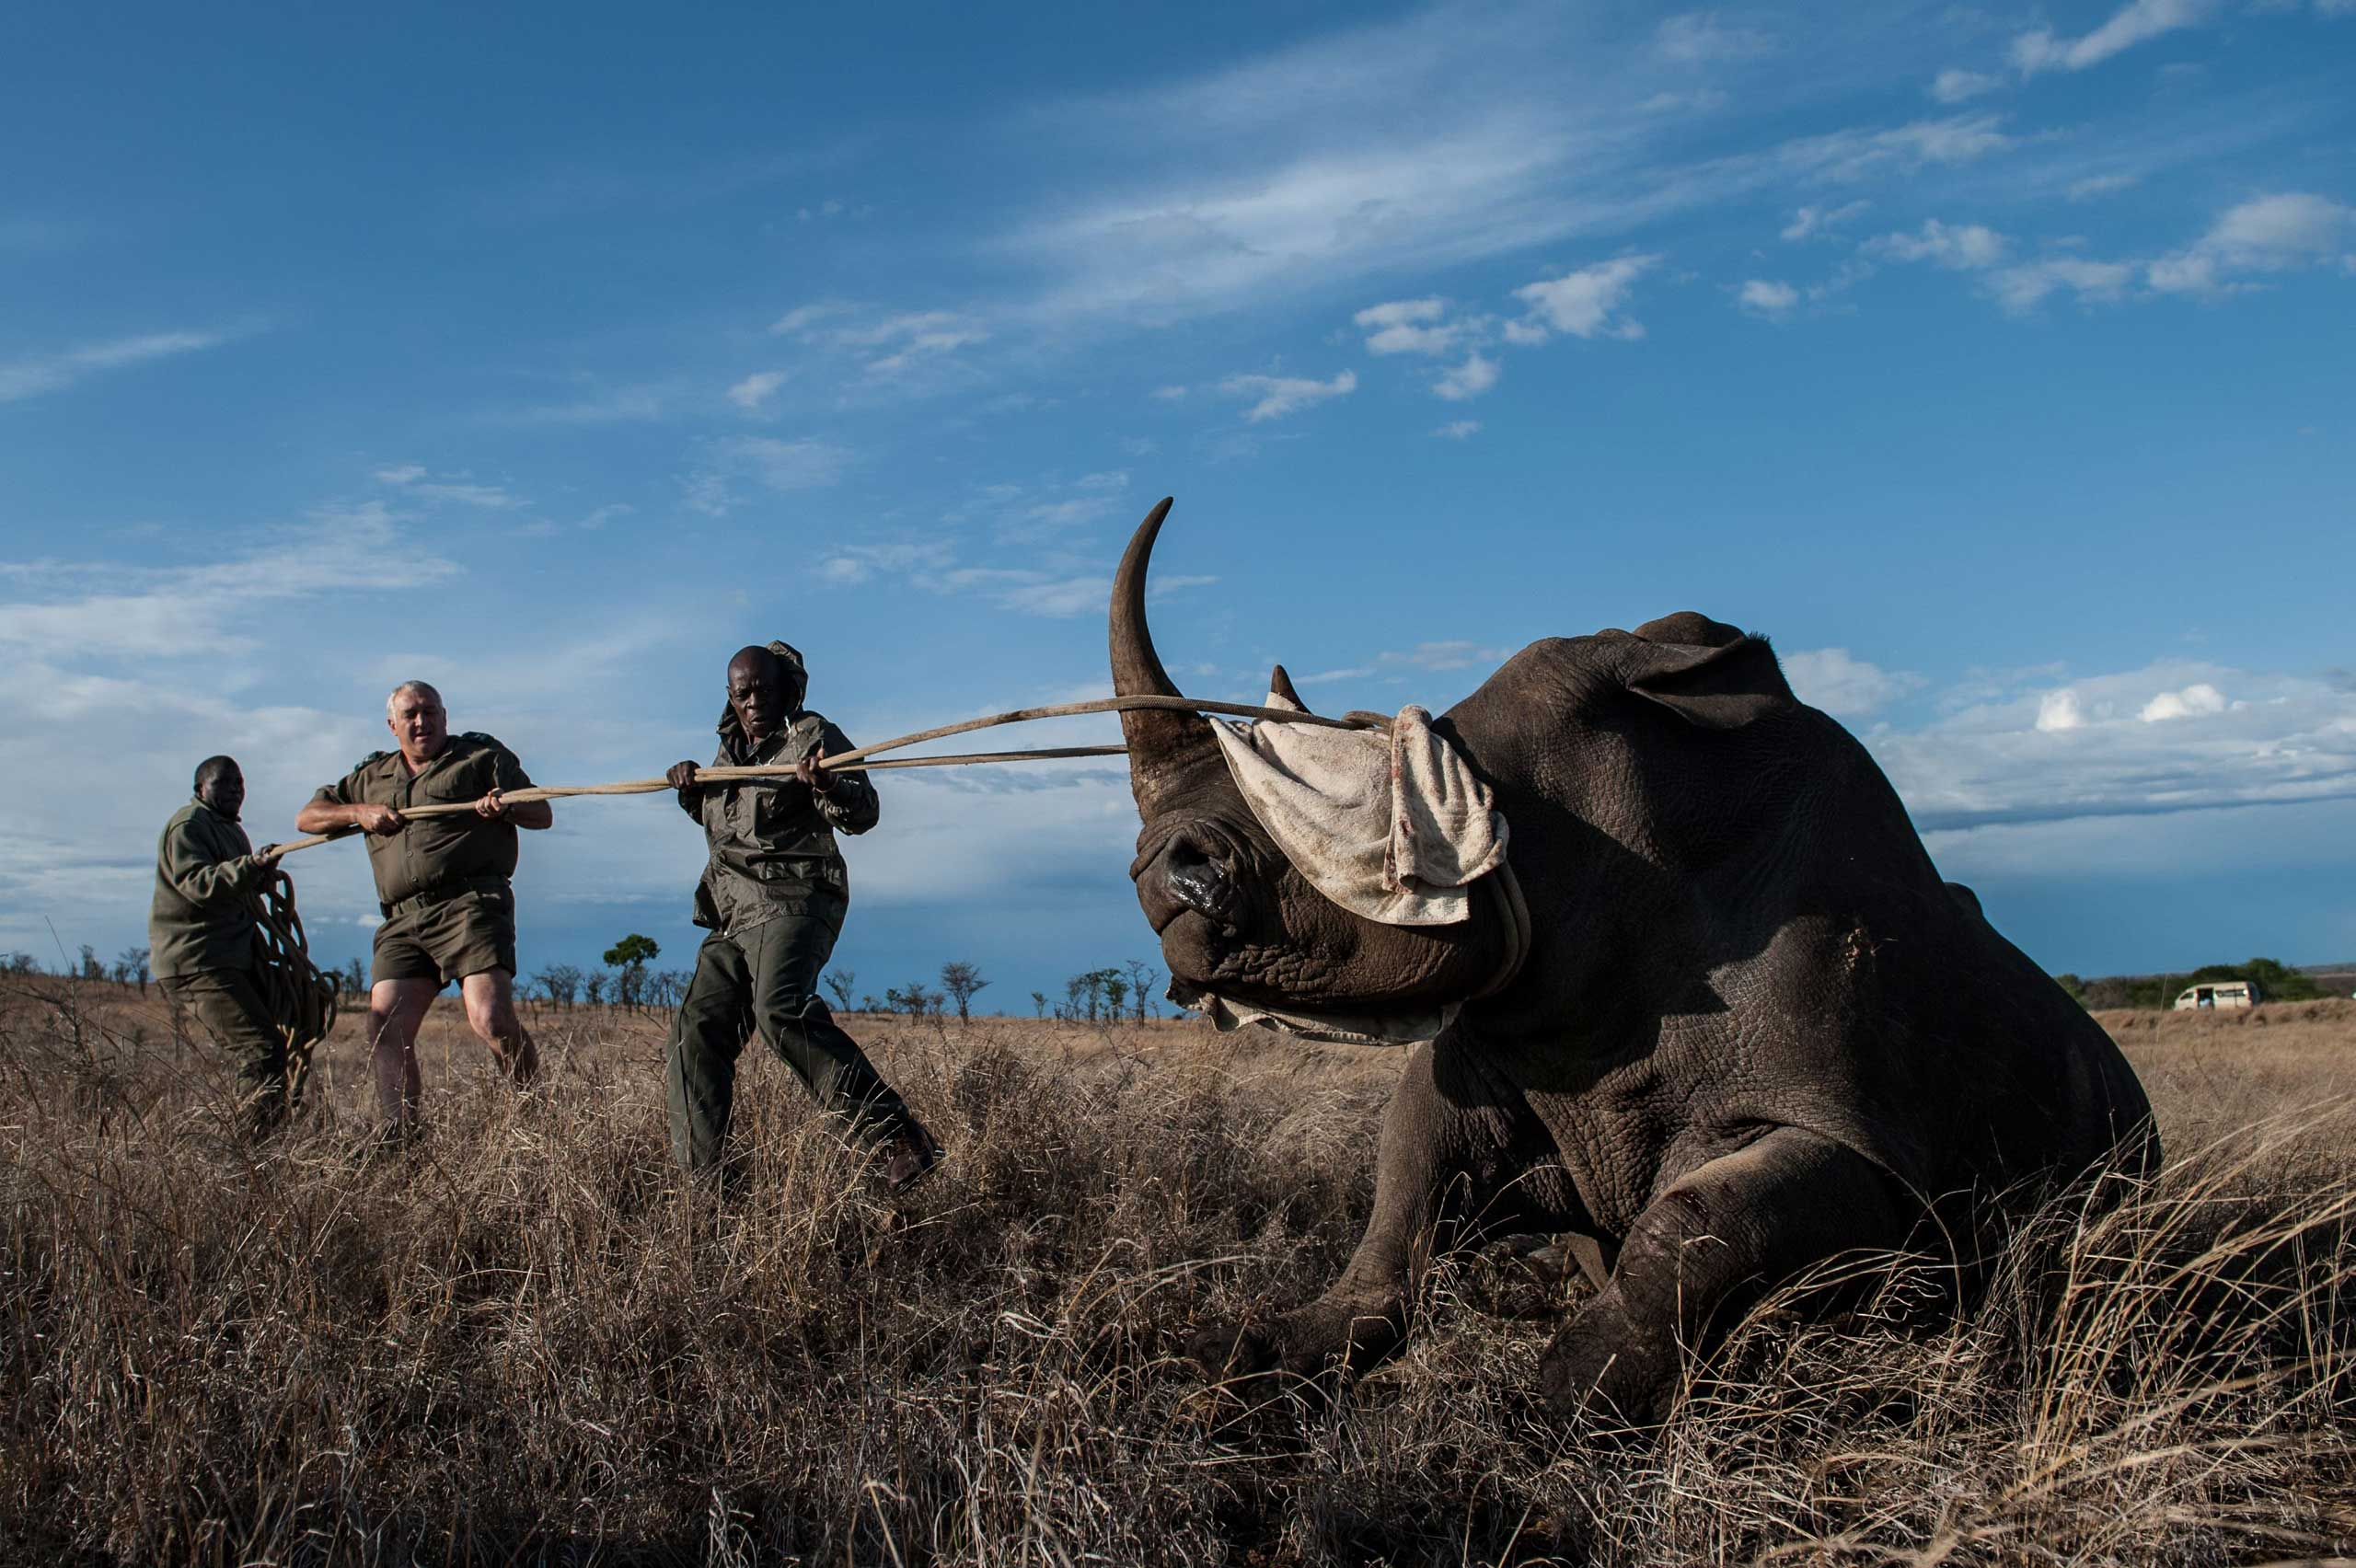 Oct. 17, 2014. Dr. Marius Kruger (C) and a member of the Kruger National Park keeps the head of a rhino up during a white rhino relocation capture. The Kruger National Park relocated four rhinoceros from a high risk poaching area to a safer area as part of ongoing strategic rhinoceros management plan.